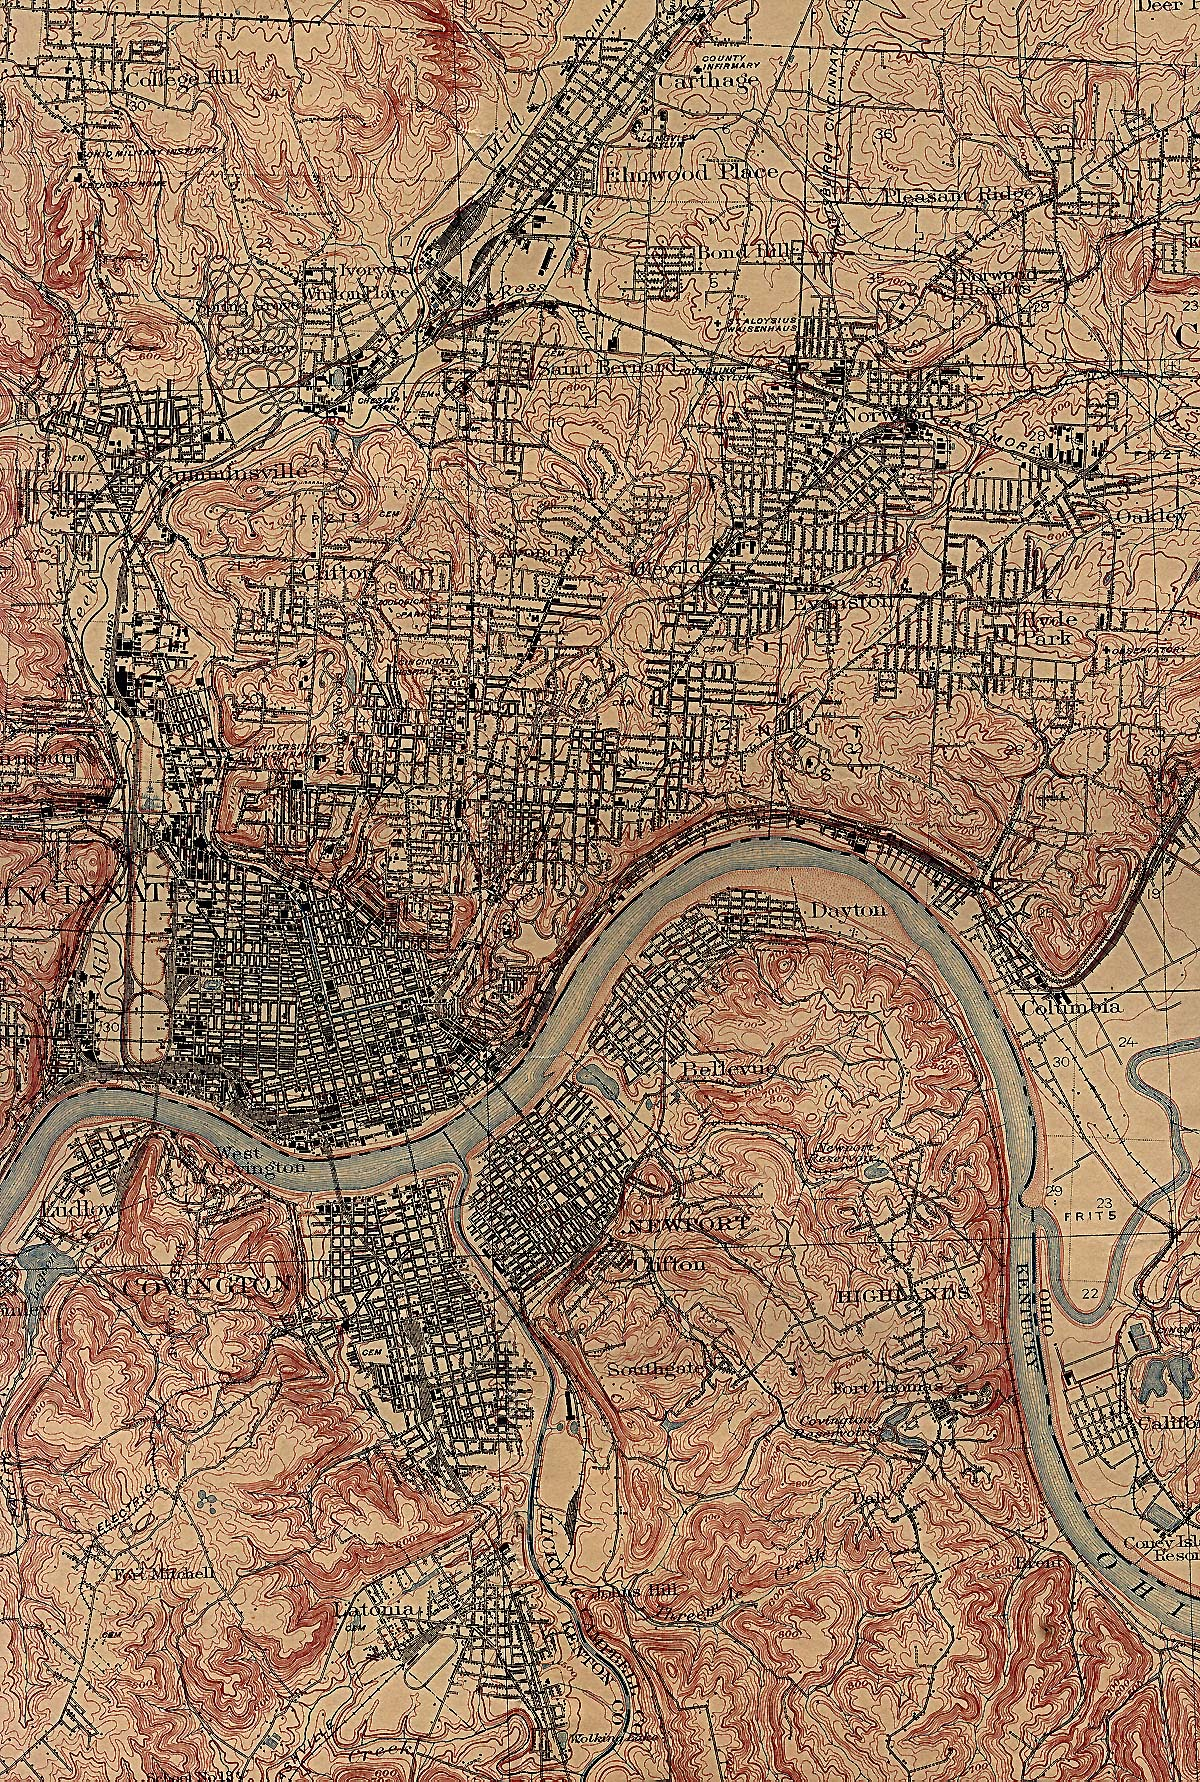 Historical Maps of U.S Cities. Cincinnati, Ohio 1914 U.S. Geological Survey (1,454K)